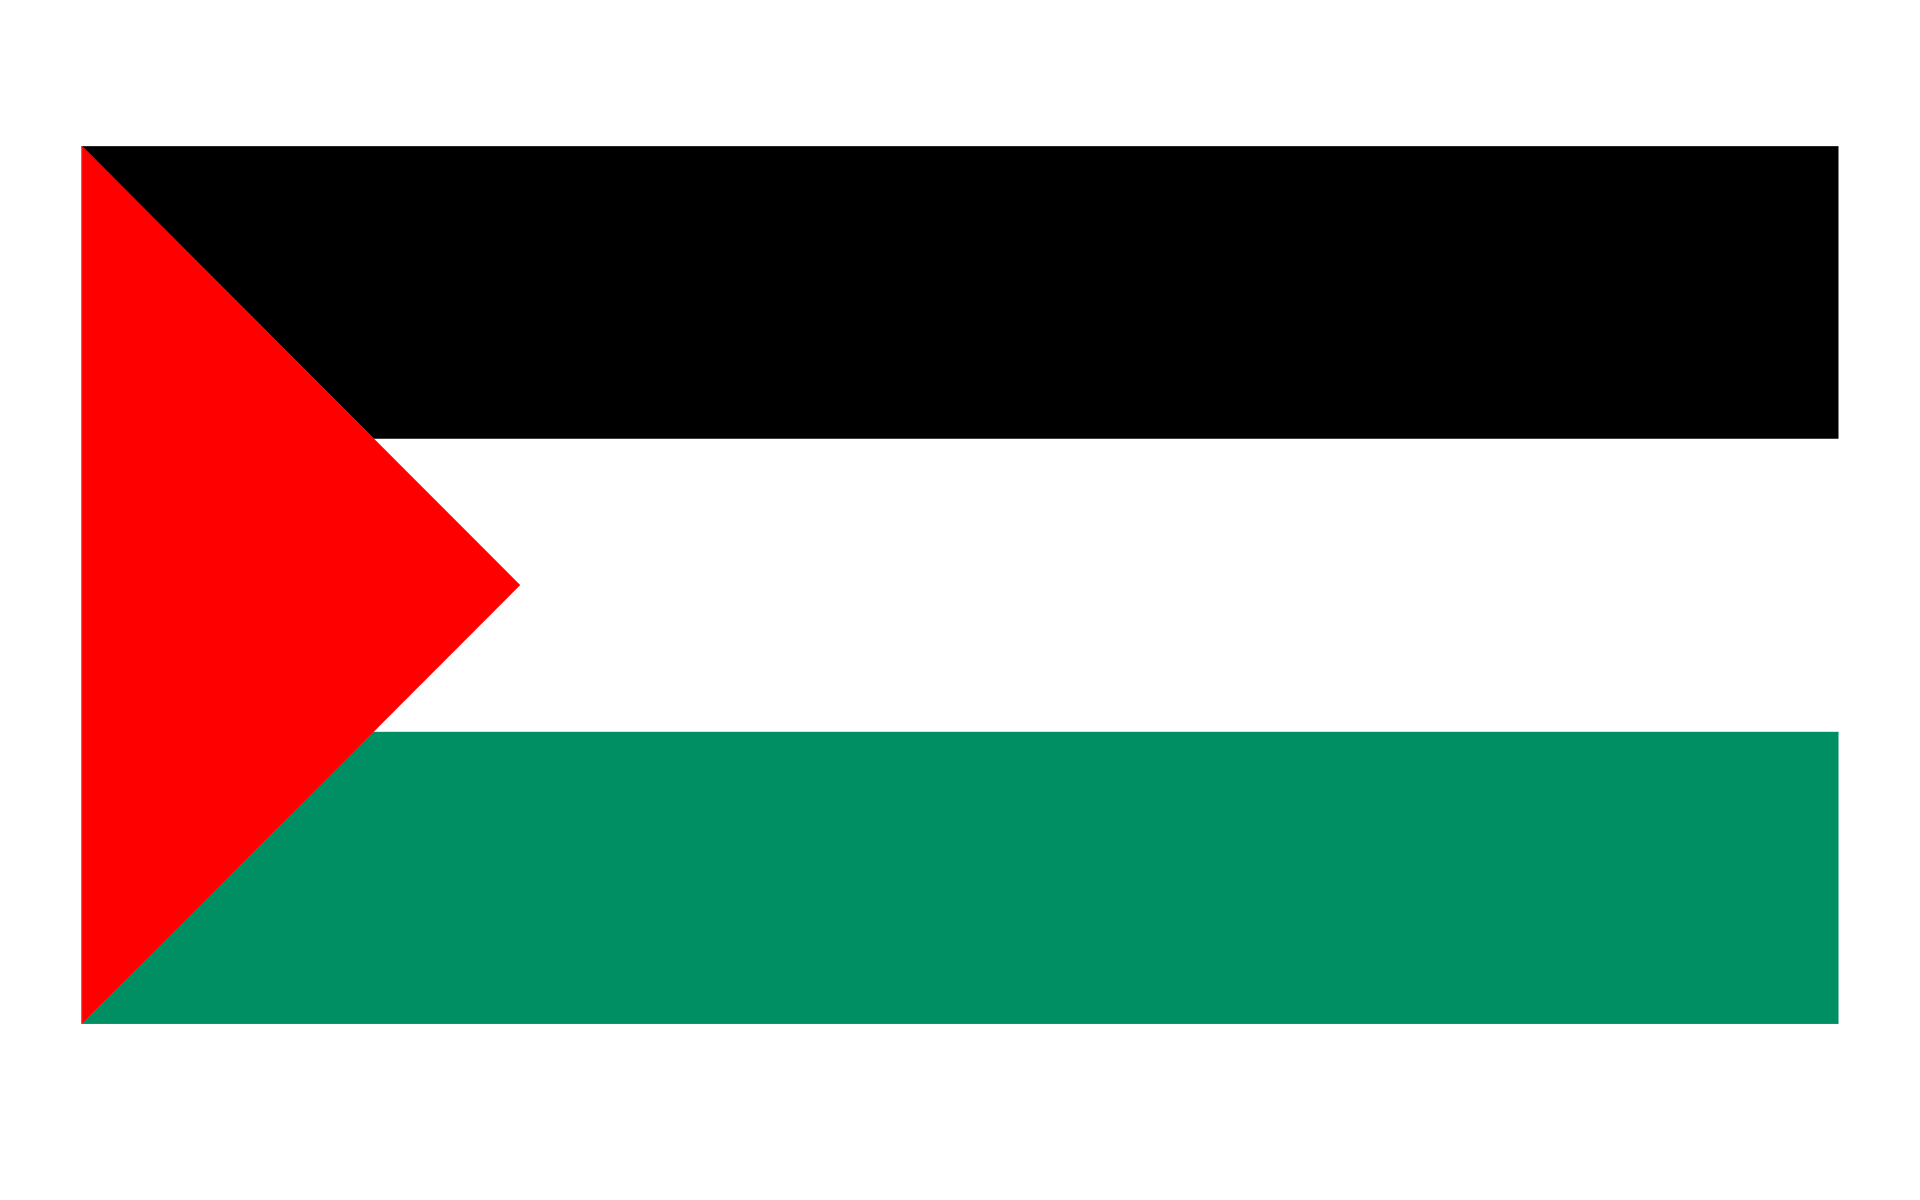 Download Free High-quality Palestine Flag Png Transparent Images image #38276